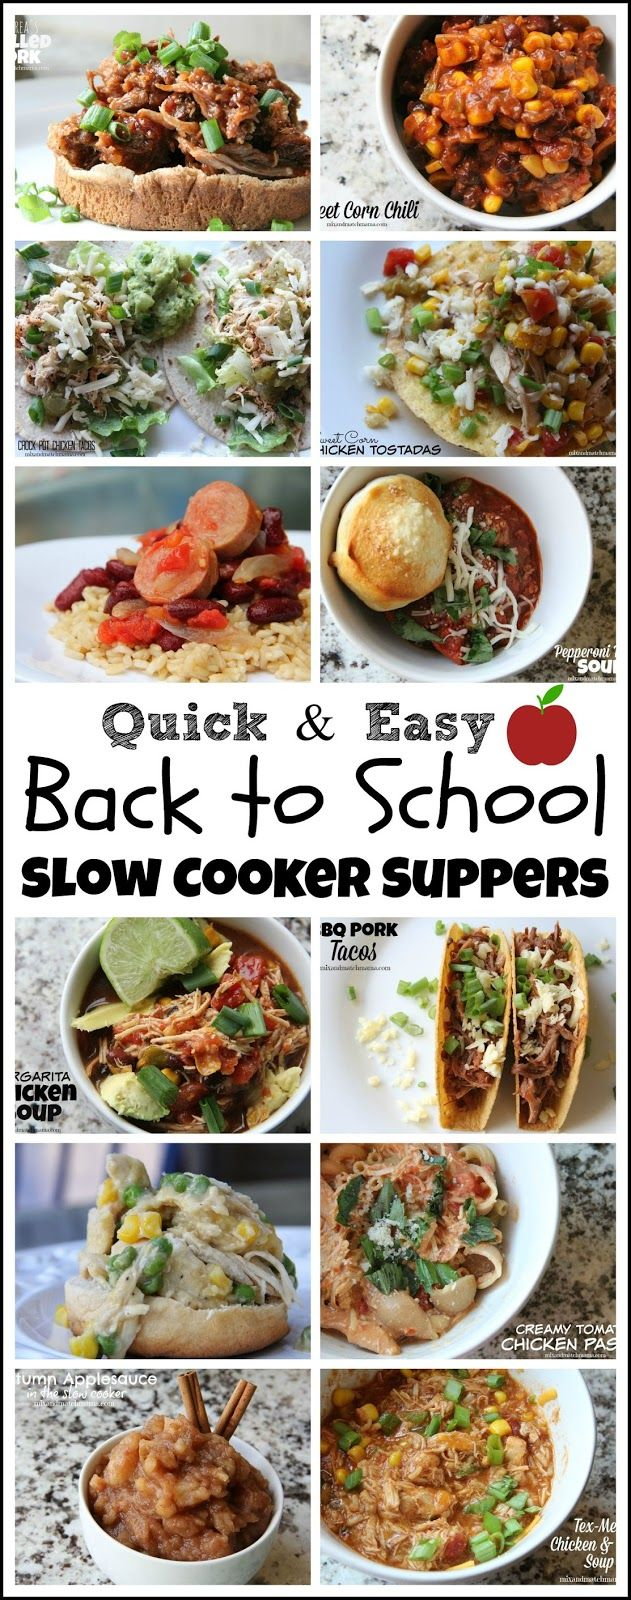 Quick and Easy Back to School Slow Cooker Recipes!